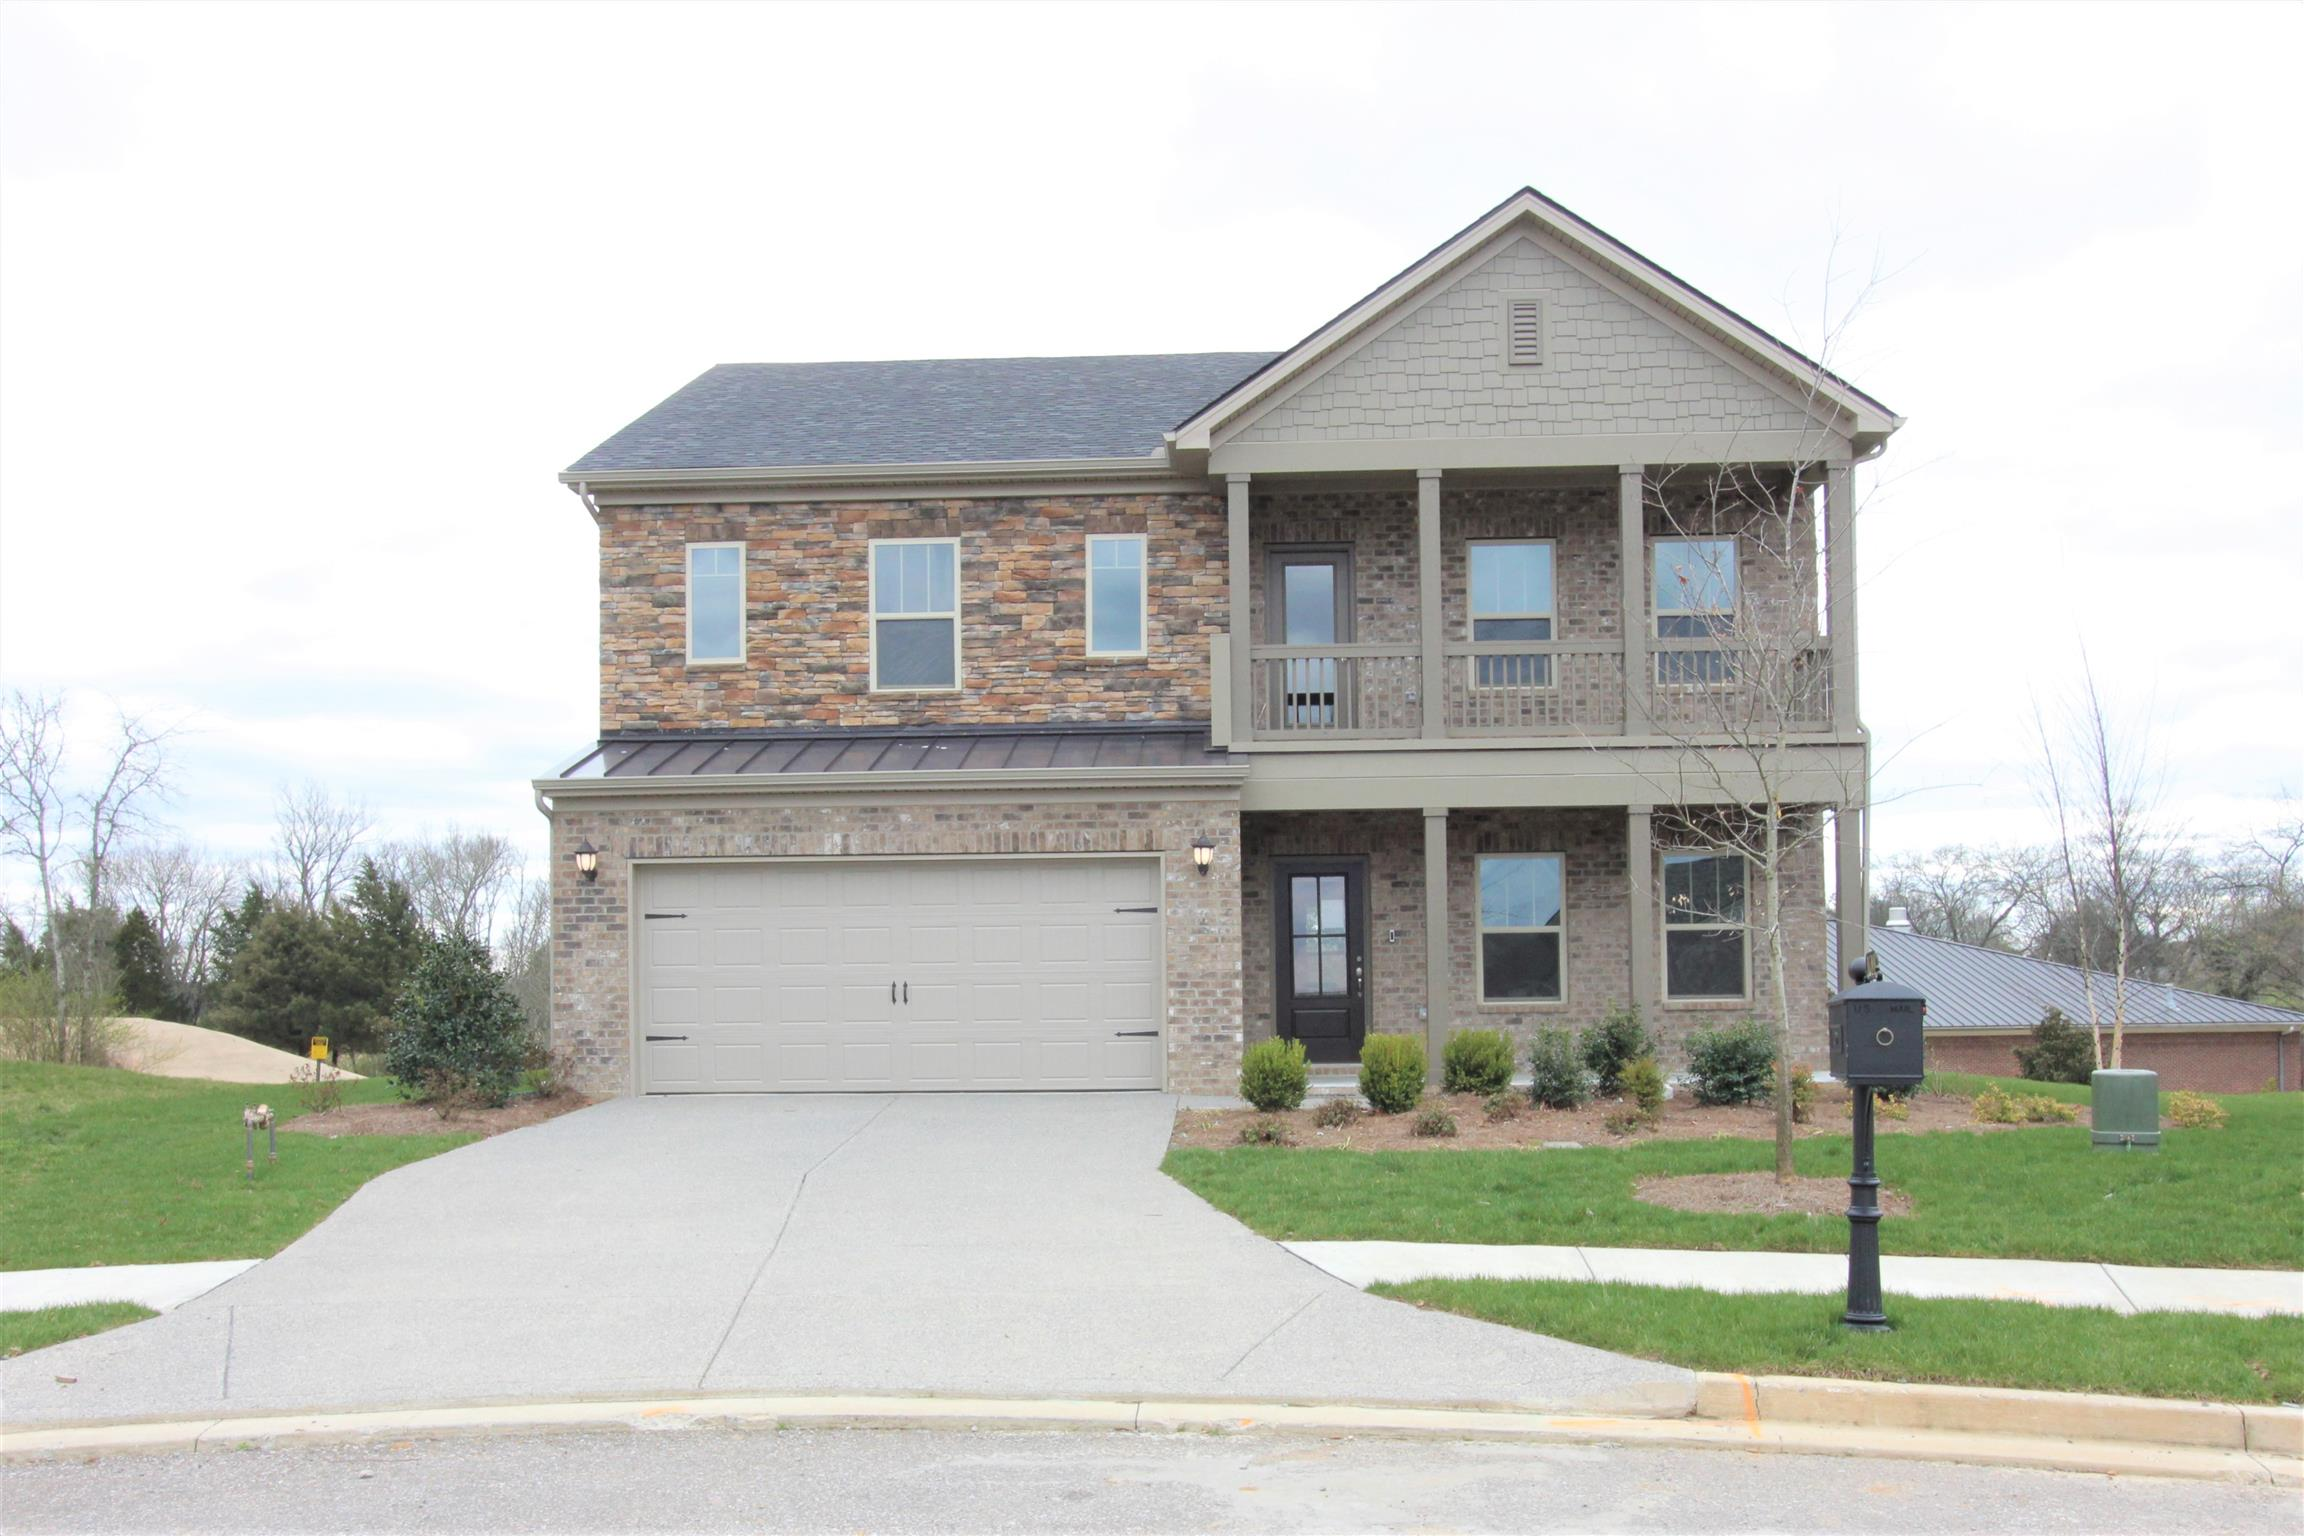 1744 Foxland Blvd 37066 - One of Gallatin Homes for Sale